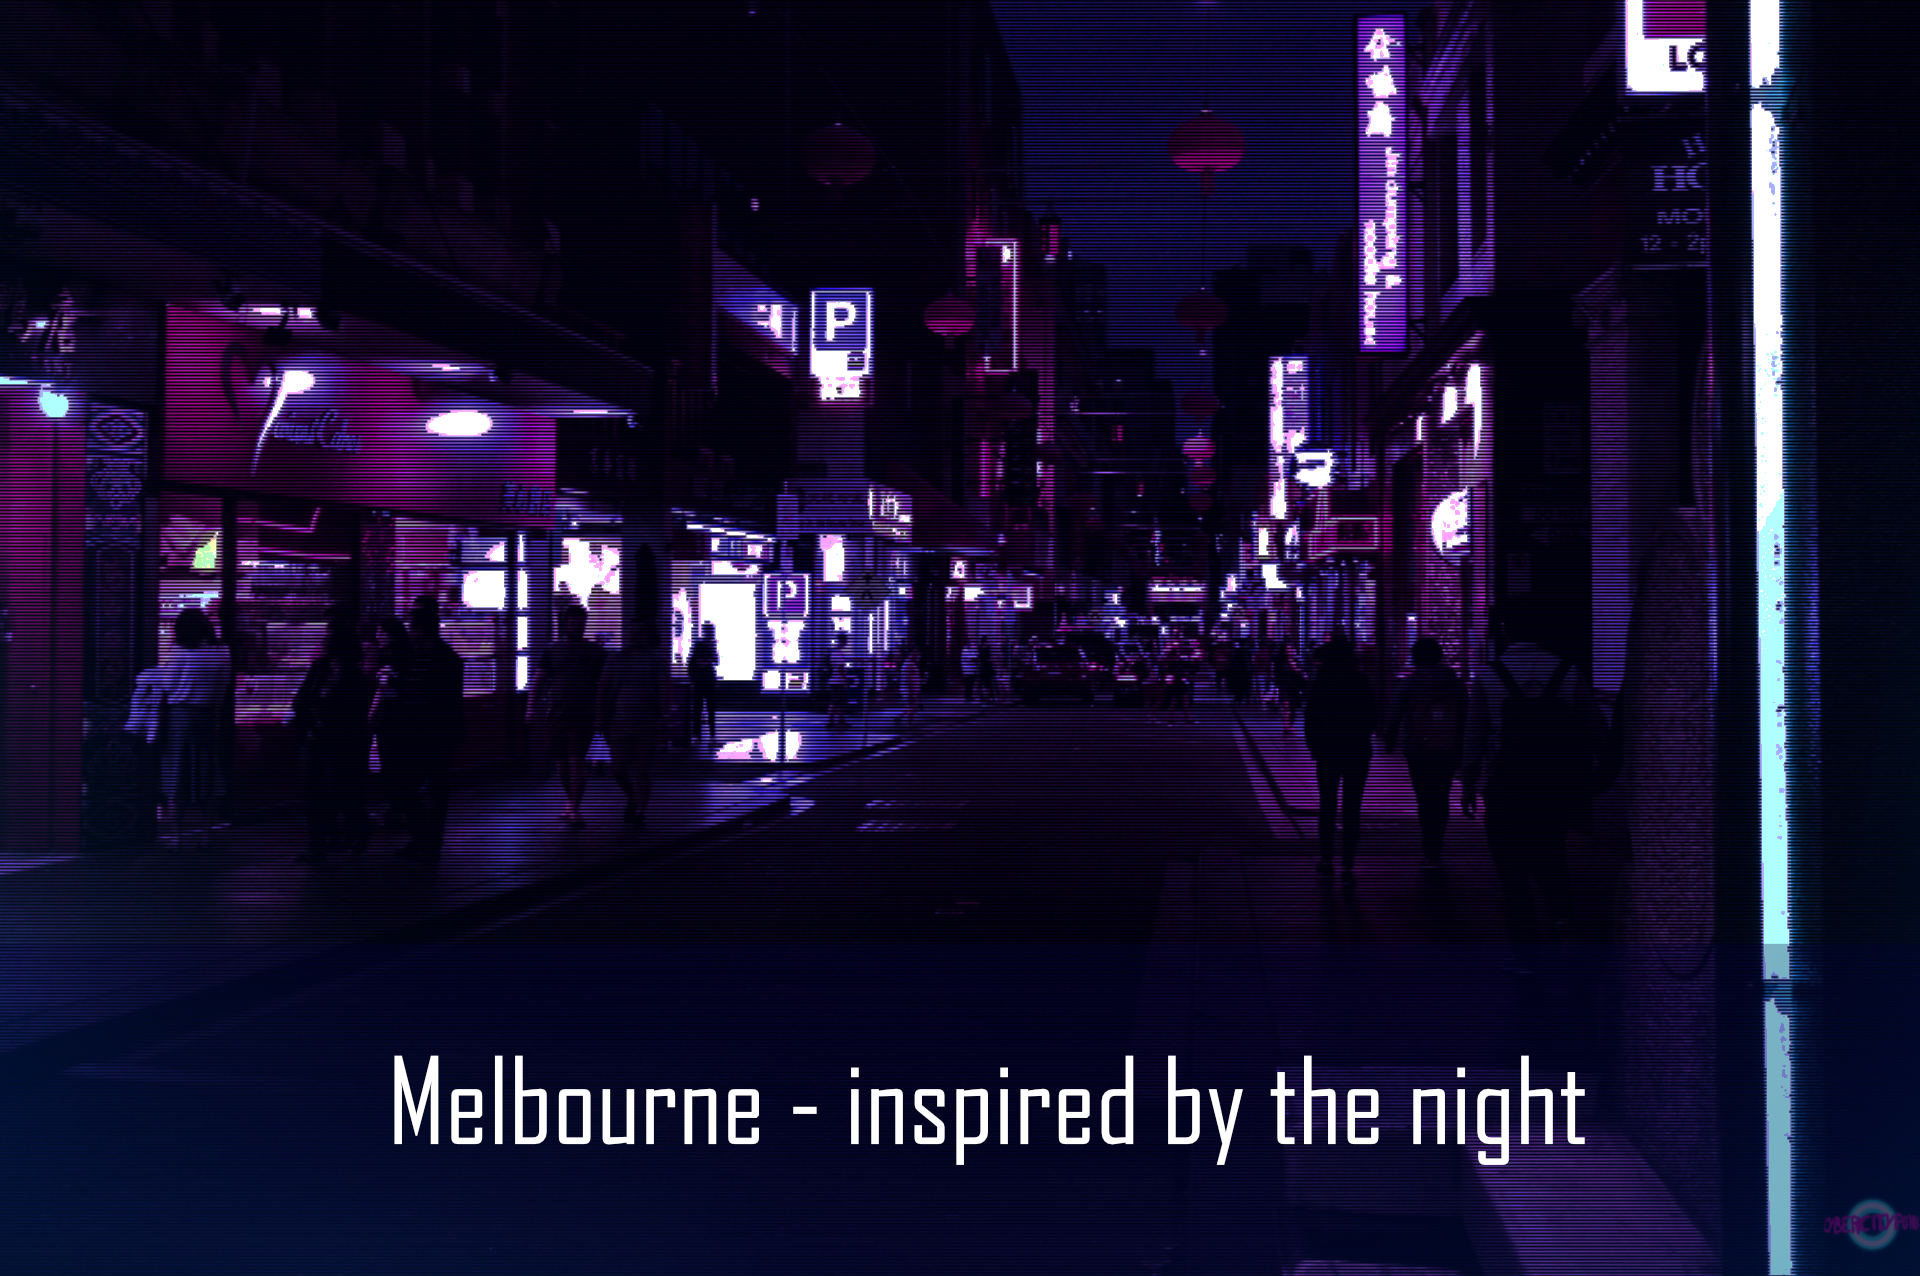 Best spots for cyberpunk photos in Melbourne at night